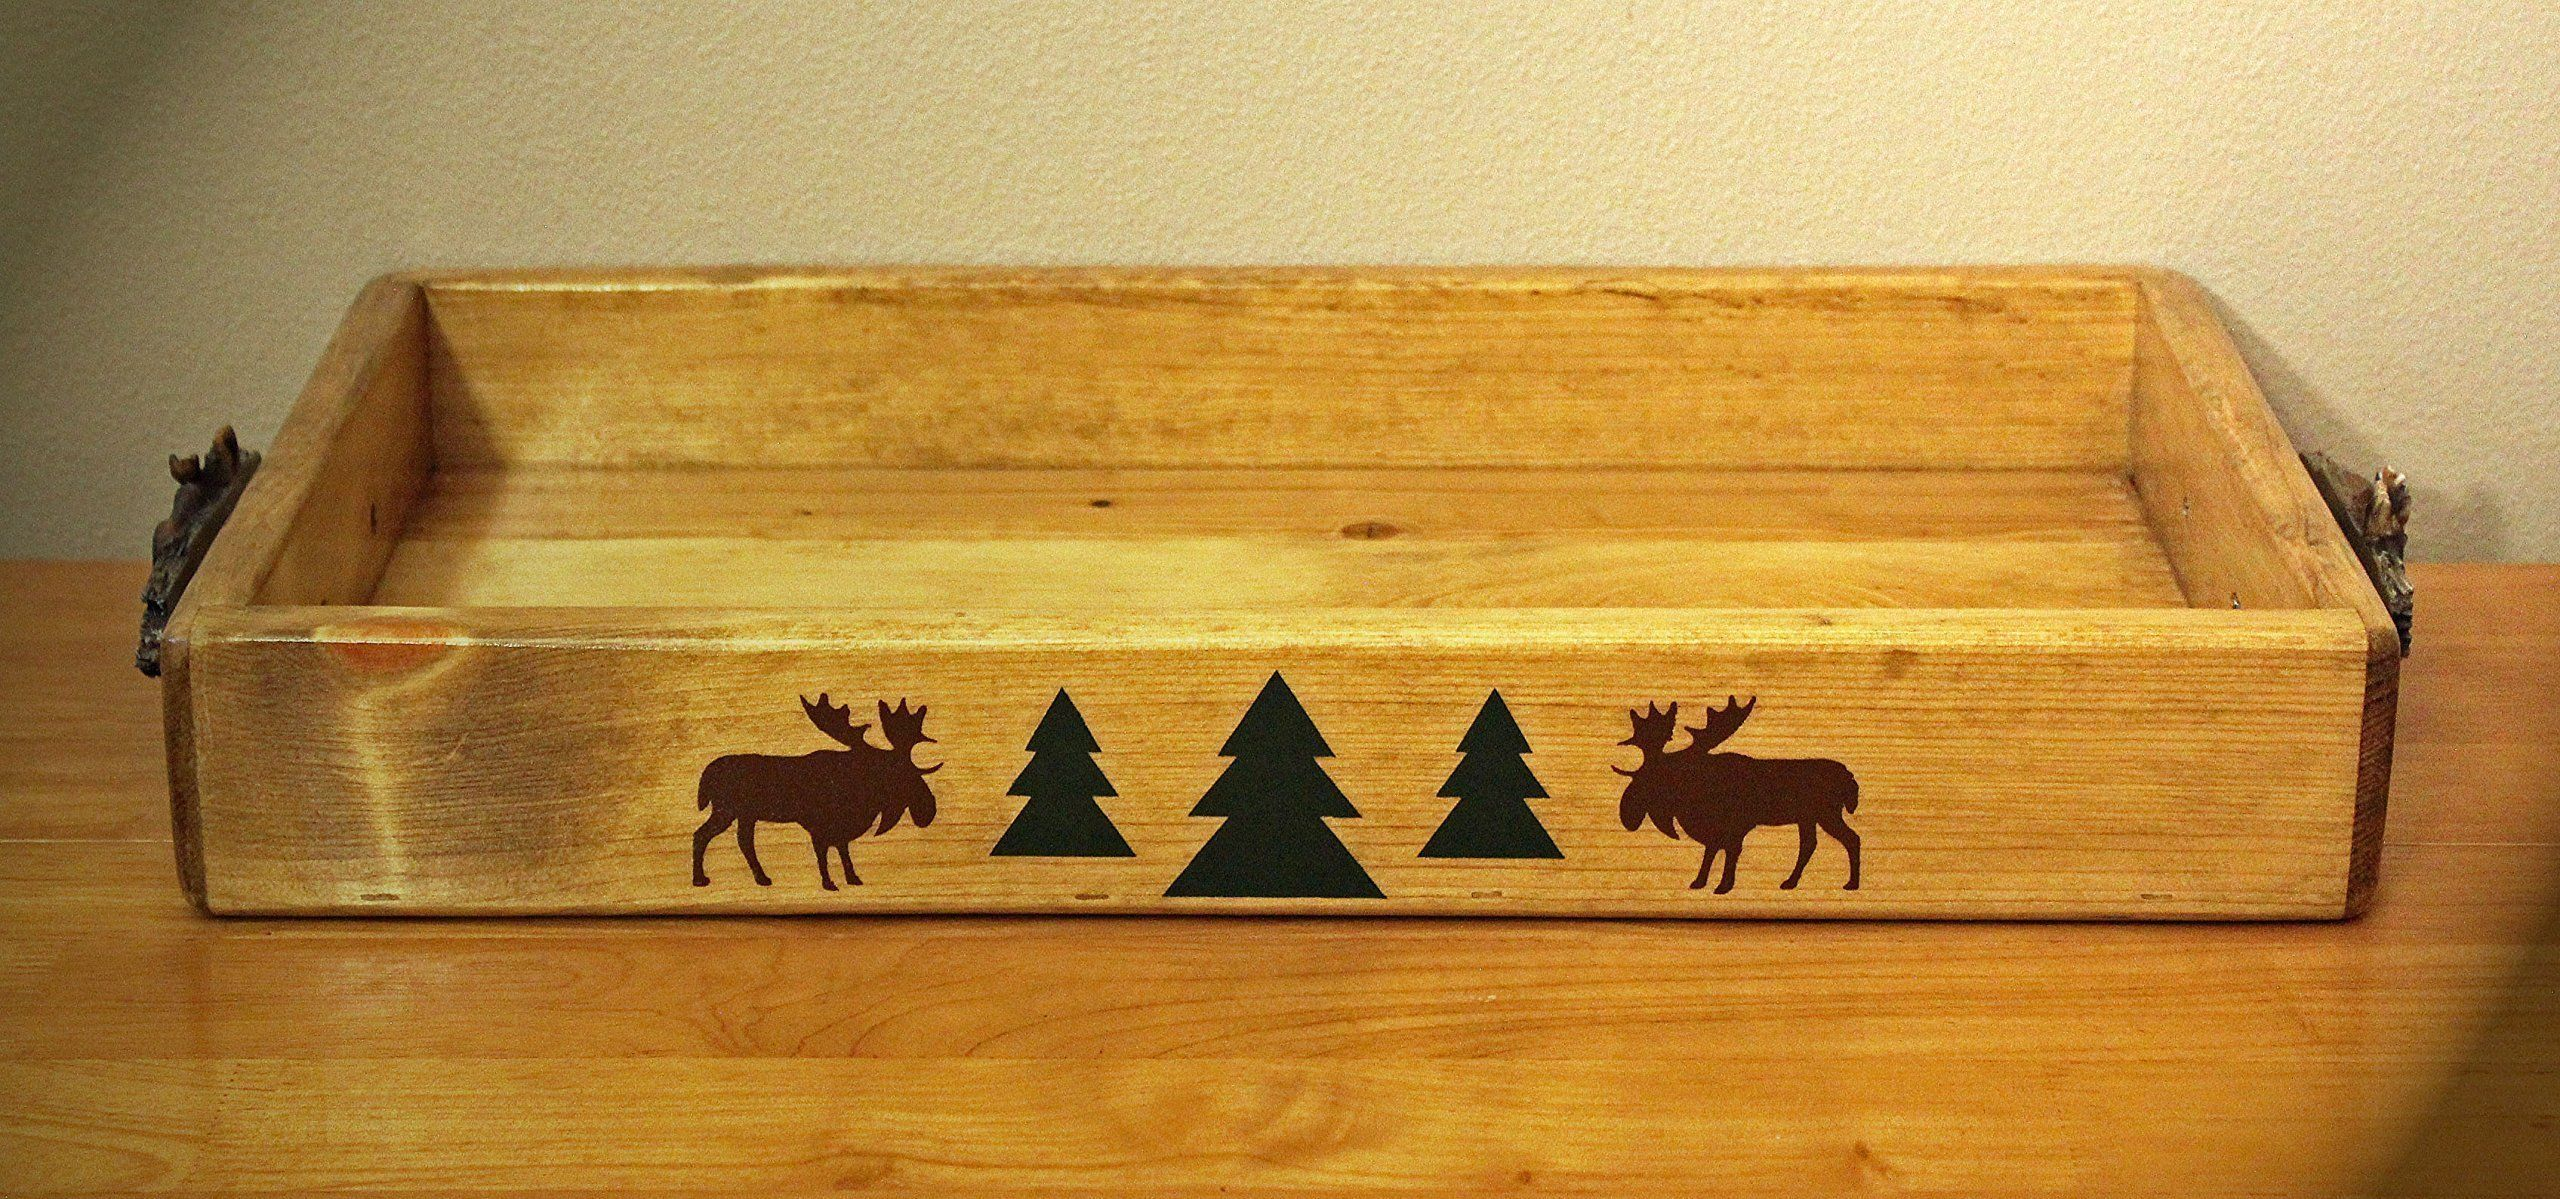 Rustic Cabin/Lodge Decor...The Moose River Handmade Serving Tray ...